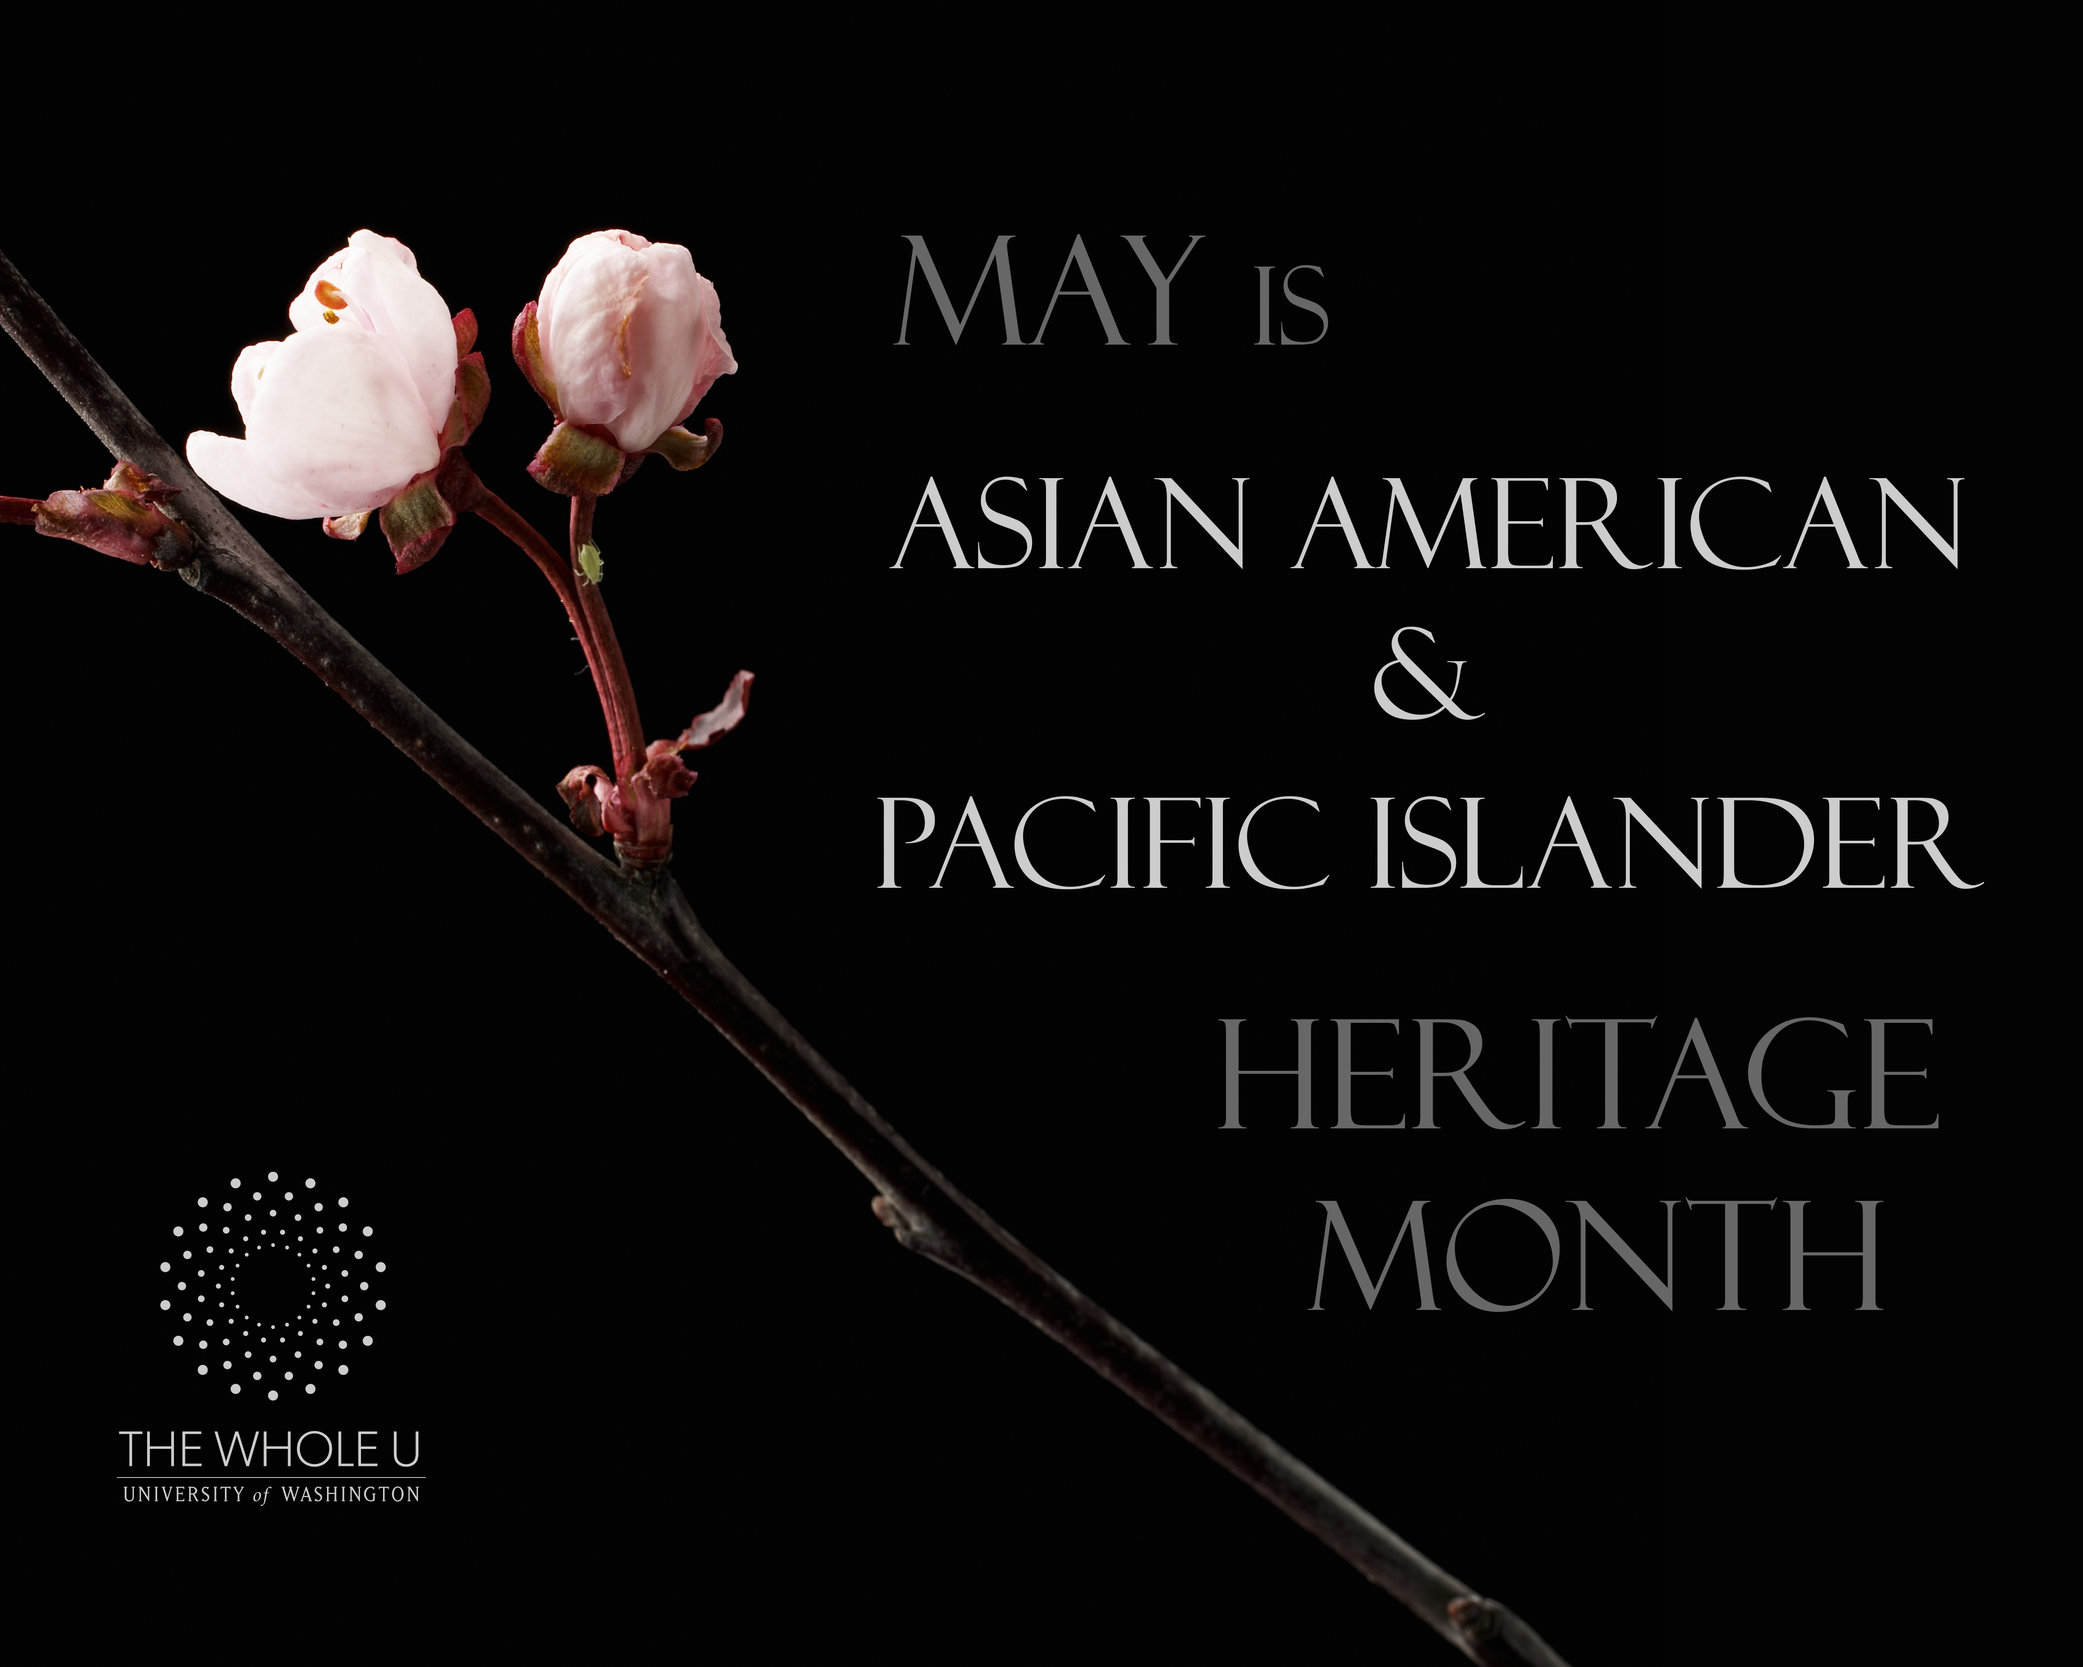 Asian pacific islanders month